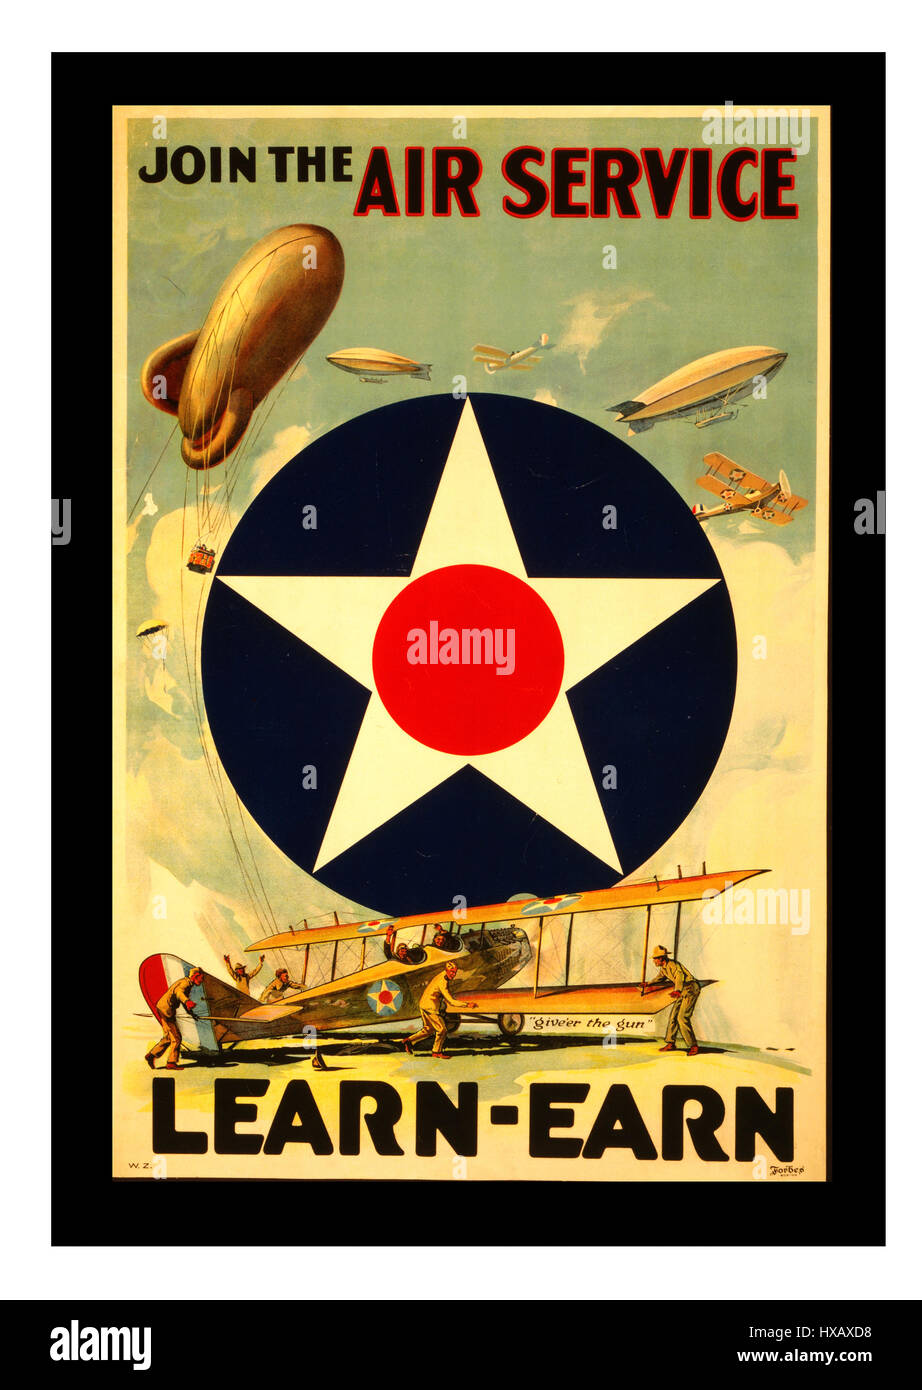 1900's Vintage recruitment American USA First World War Poster WW I Poster: Join the Air Service Learn-Earn - Stock Image